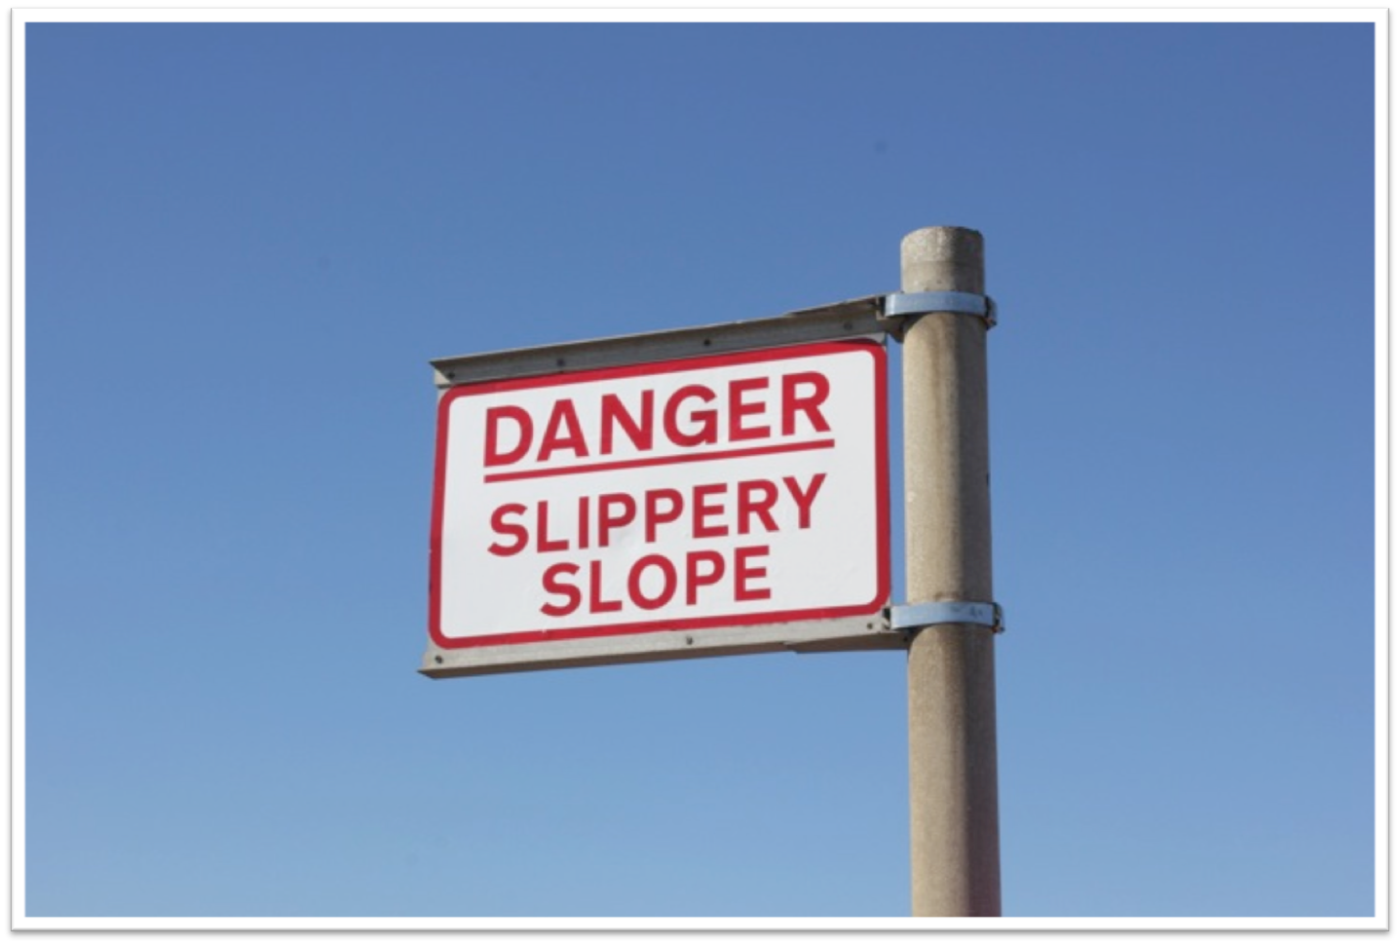 http://angelaraspass.com/wp-content/uploads/2014/08/how-to-avoid-the-slippery-slope-of-self-doubt-2.png